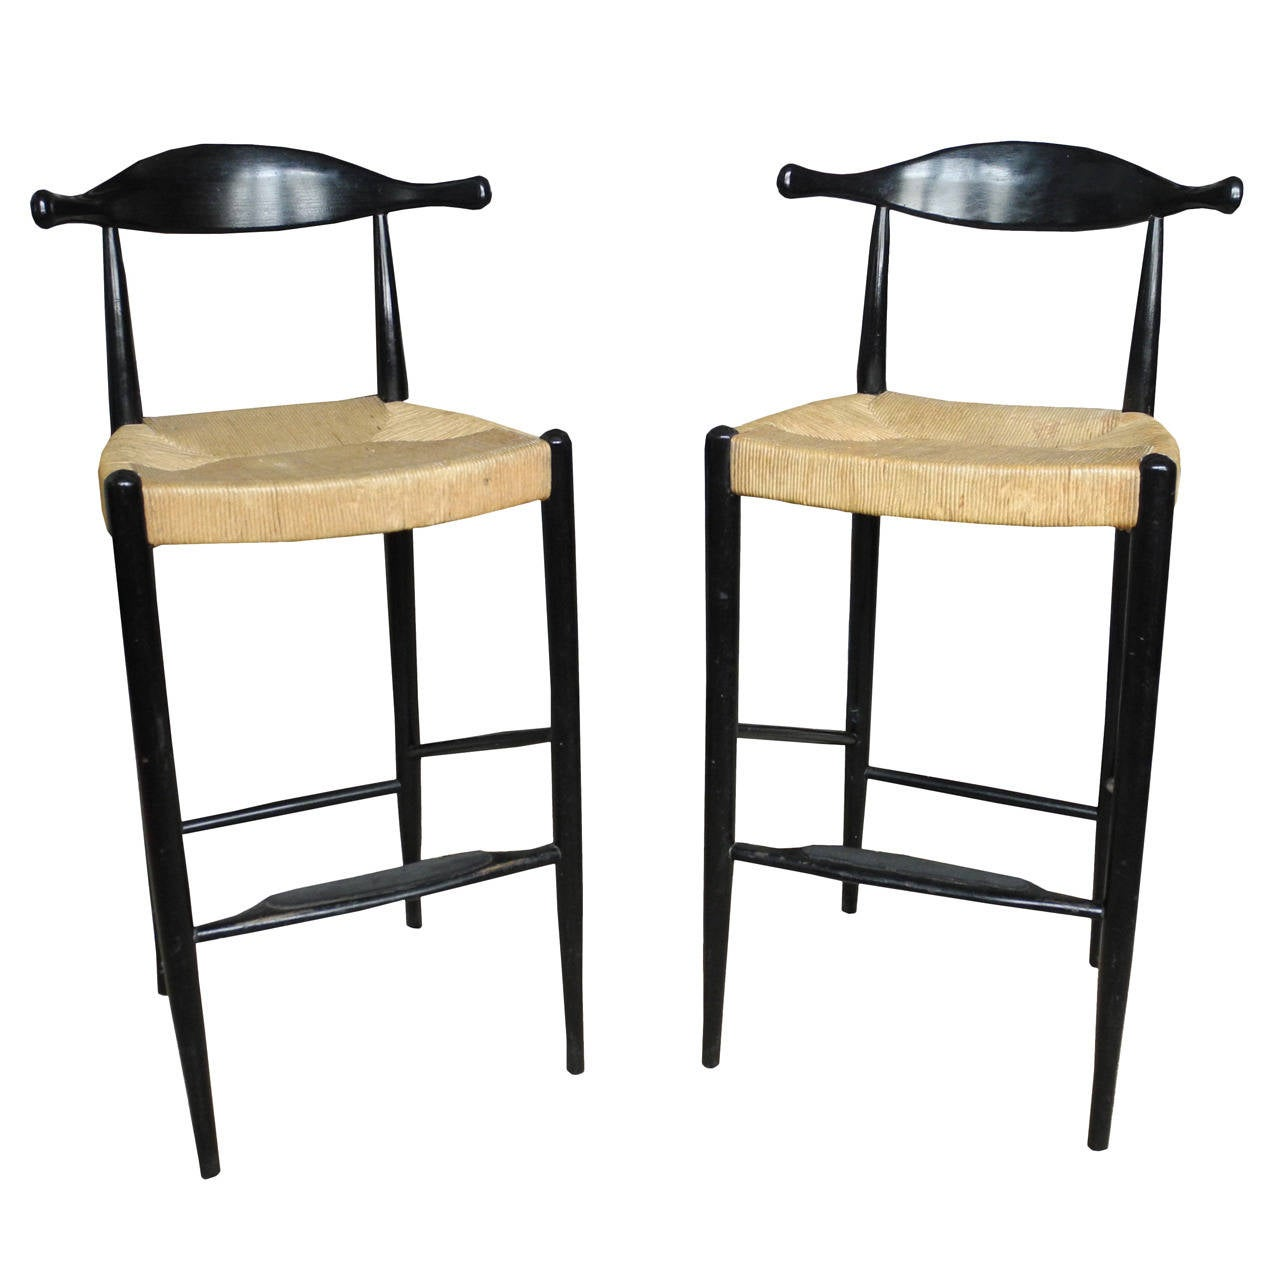 Mid century ox bow tall bar stools in the style of hans wegner for sale